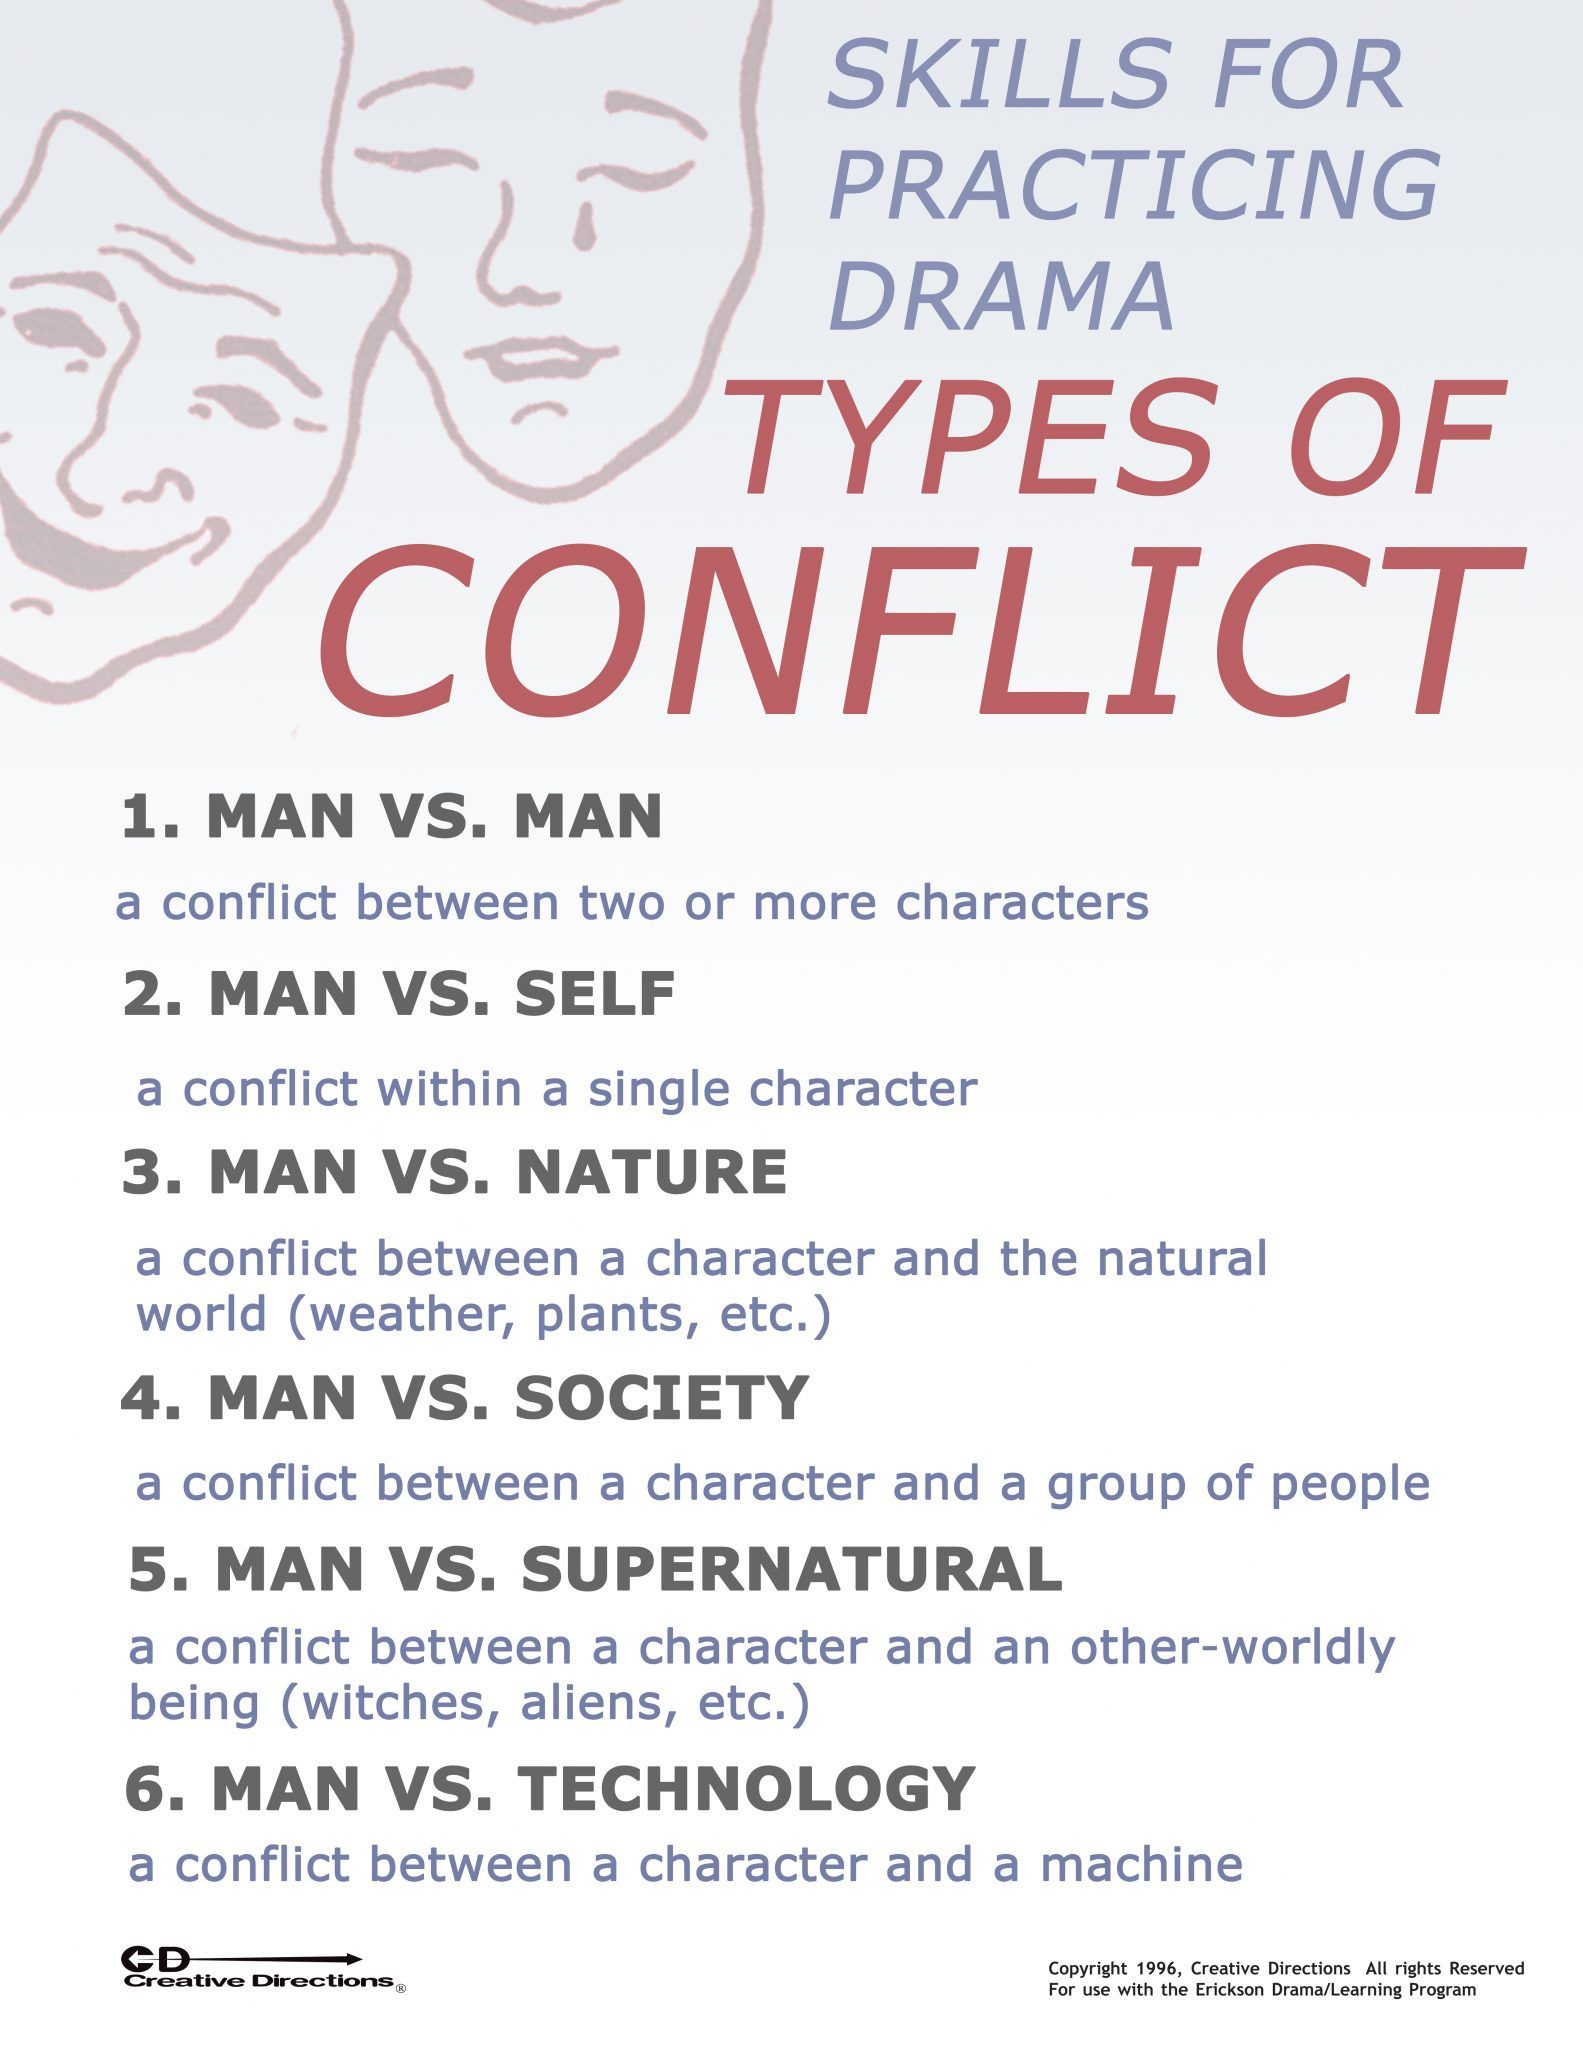 Types Of Conflict Google Search Types Of Conflict Teaching Drama Worksheet Template